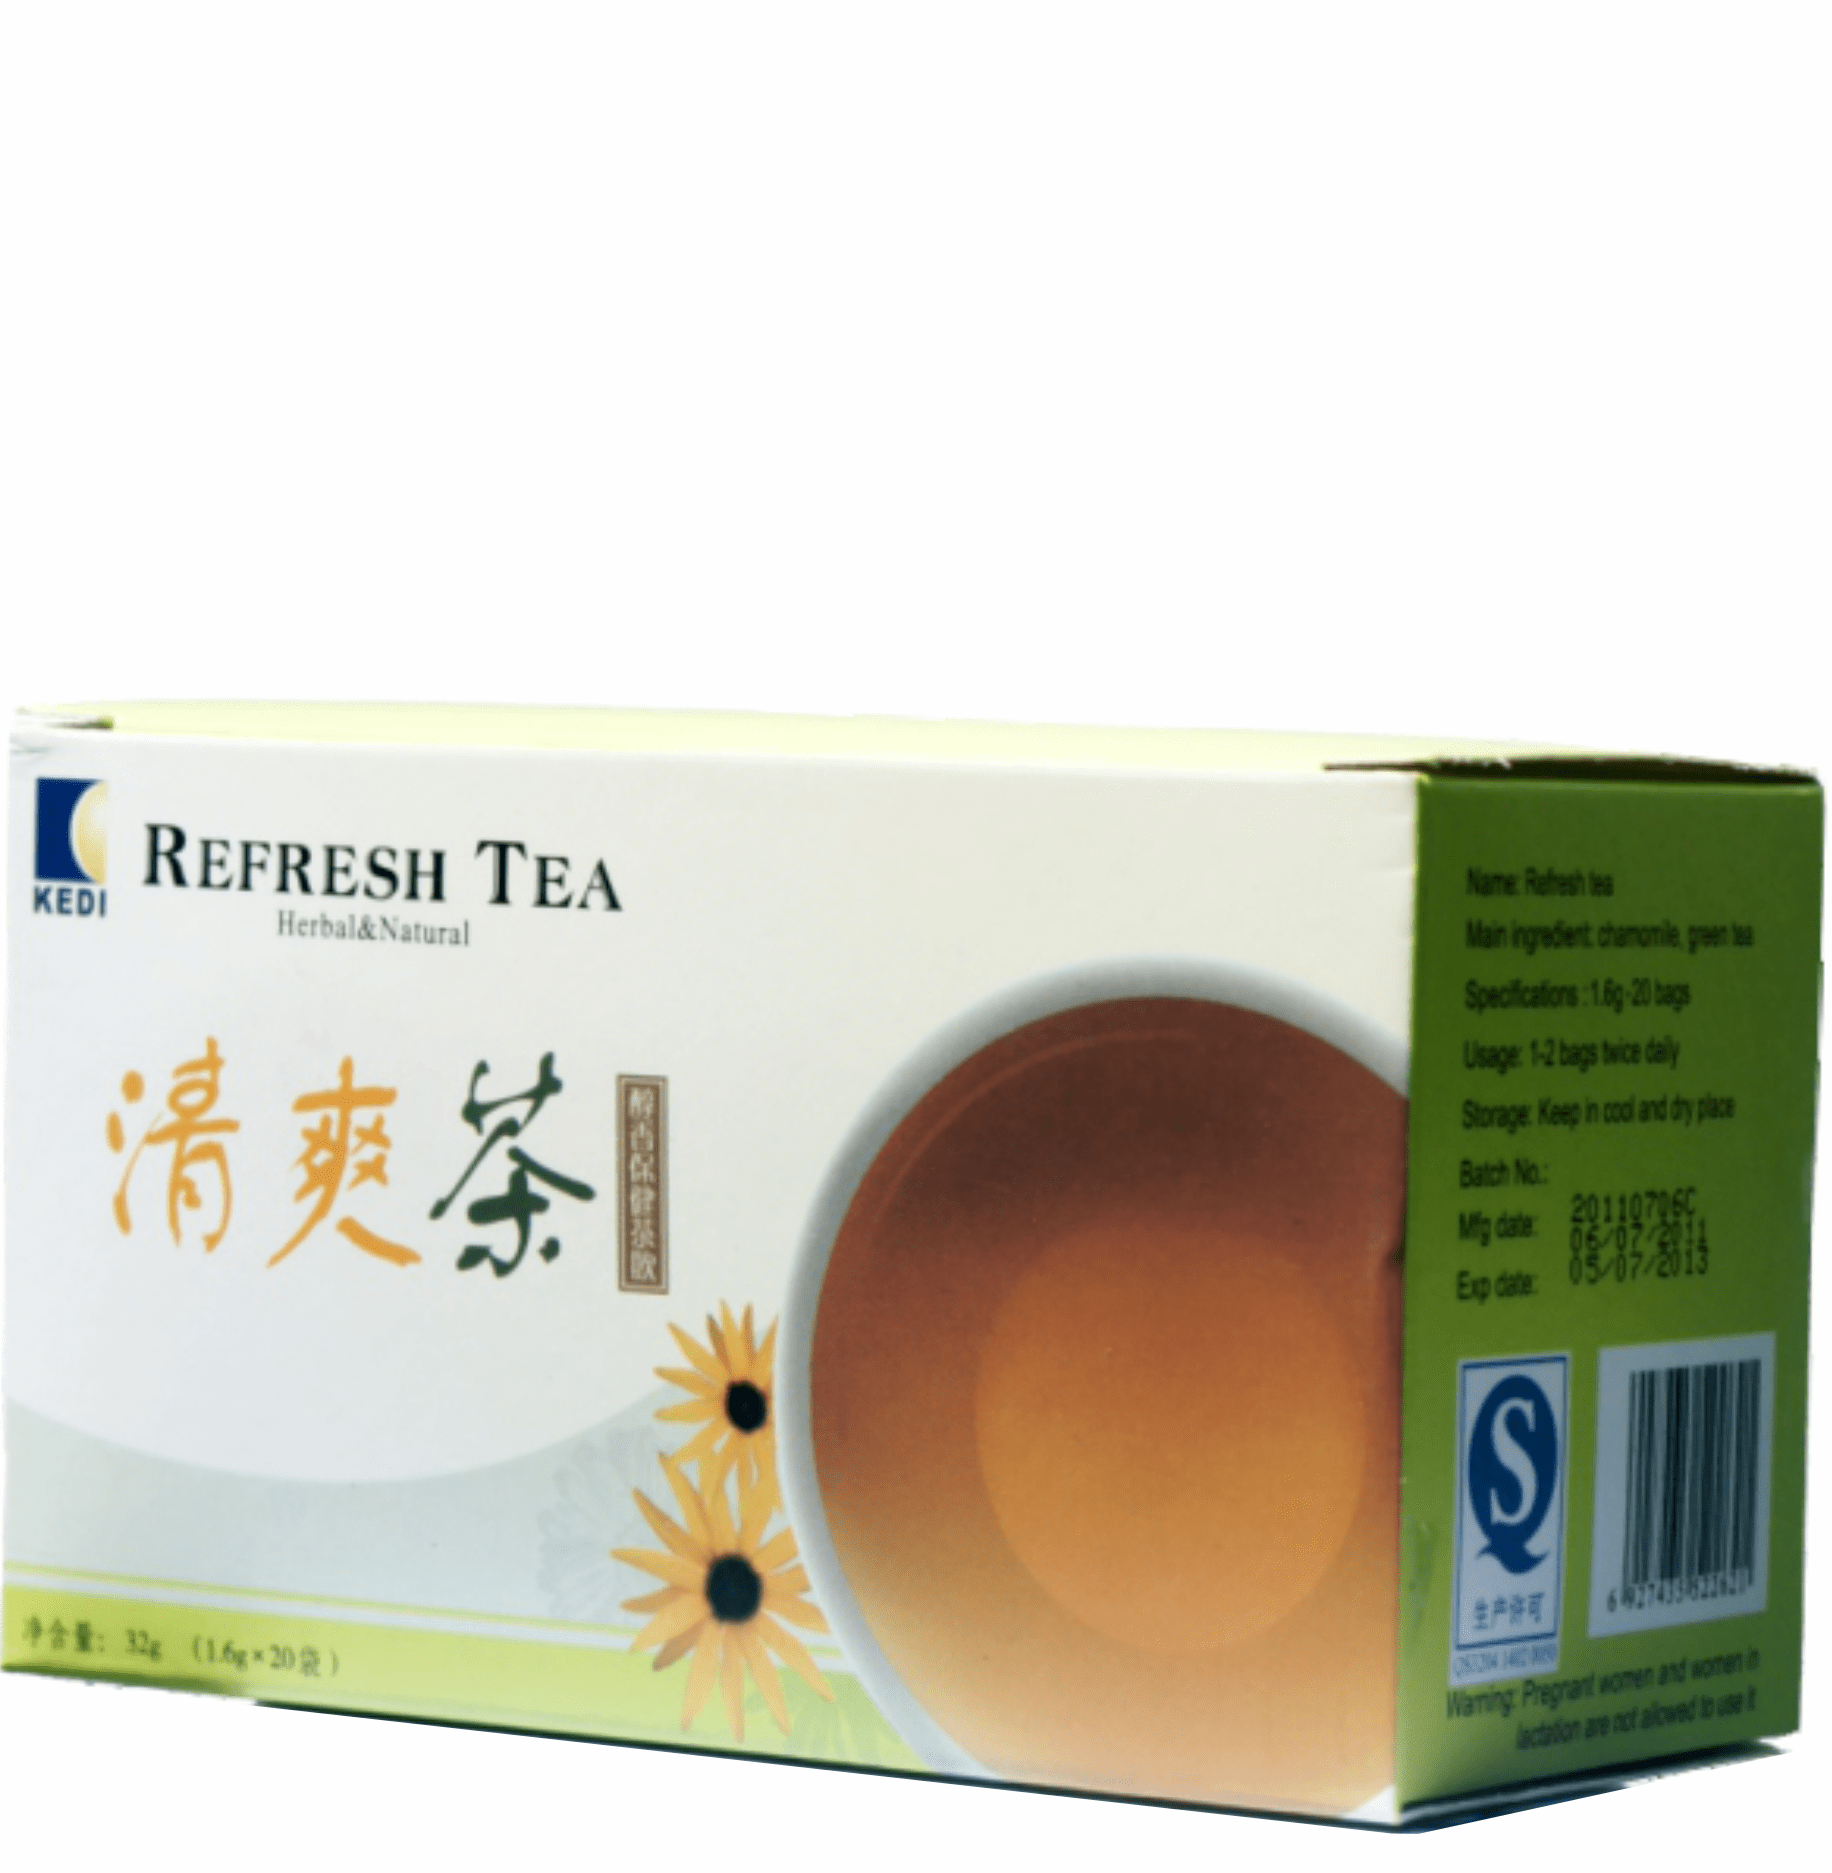 REFRESH TEA